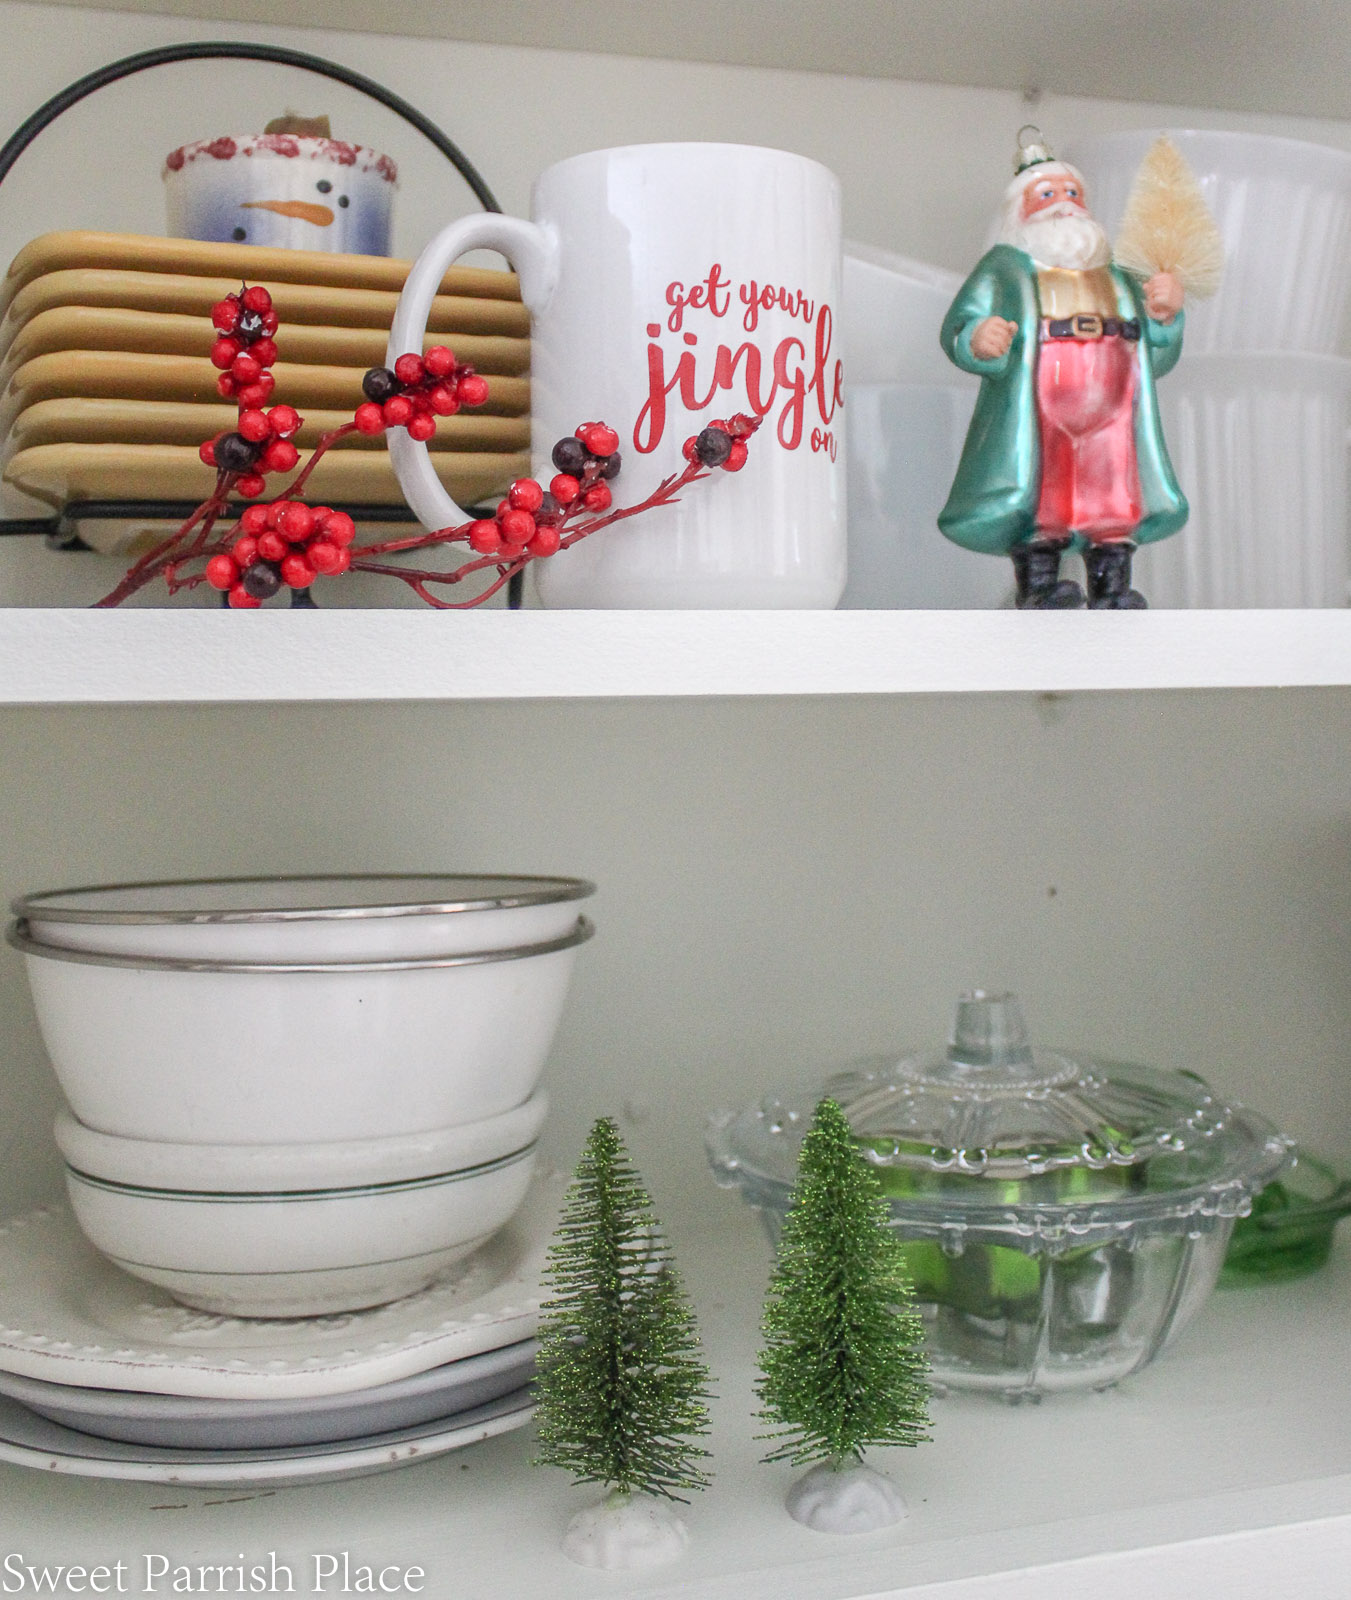 Christmas in my new kitchen- Christmas decorations on shelves